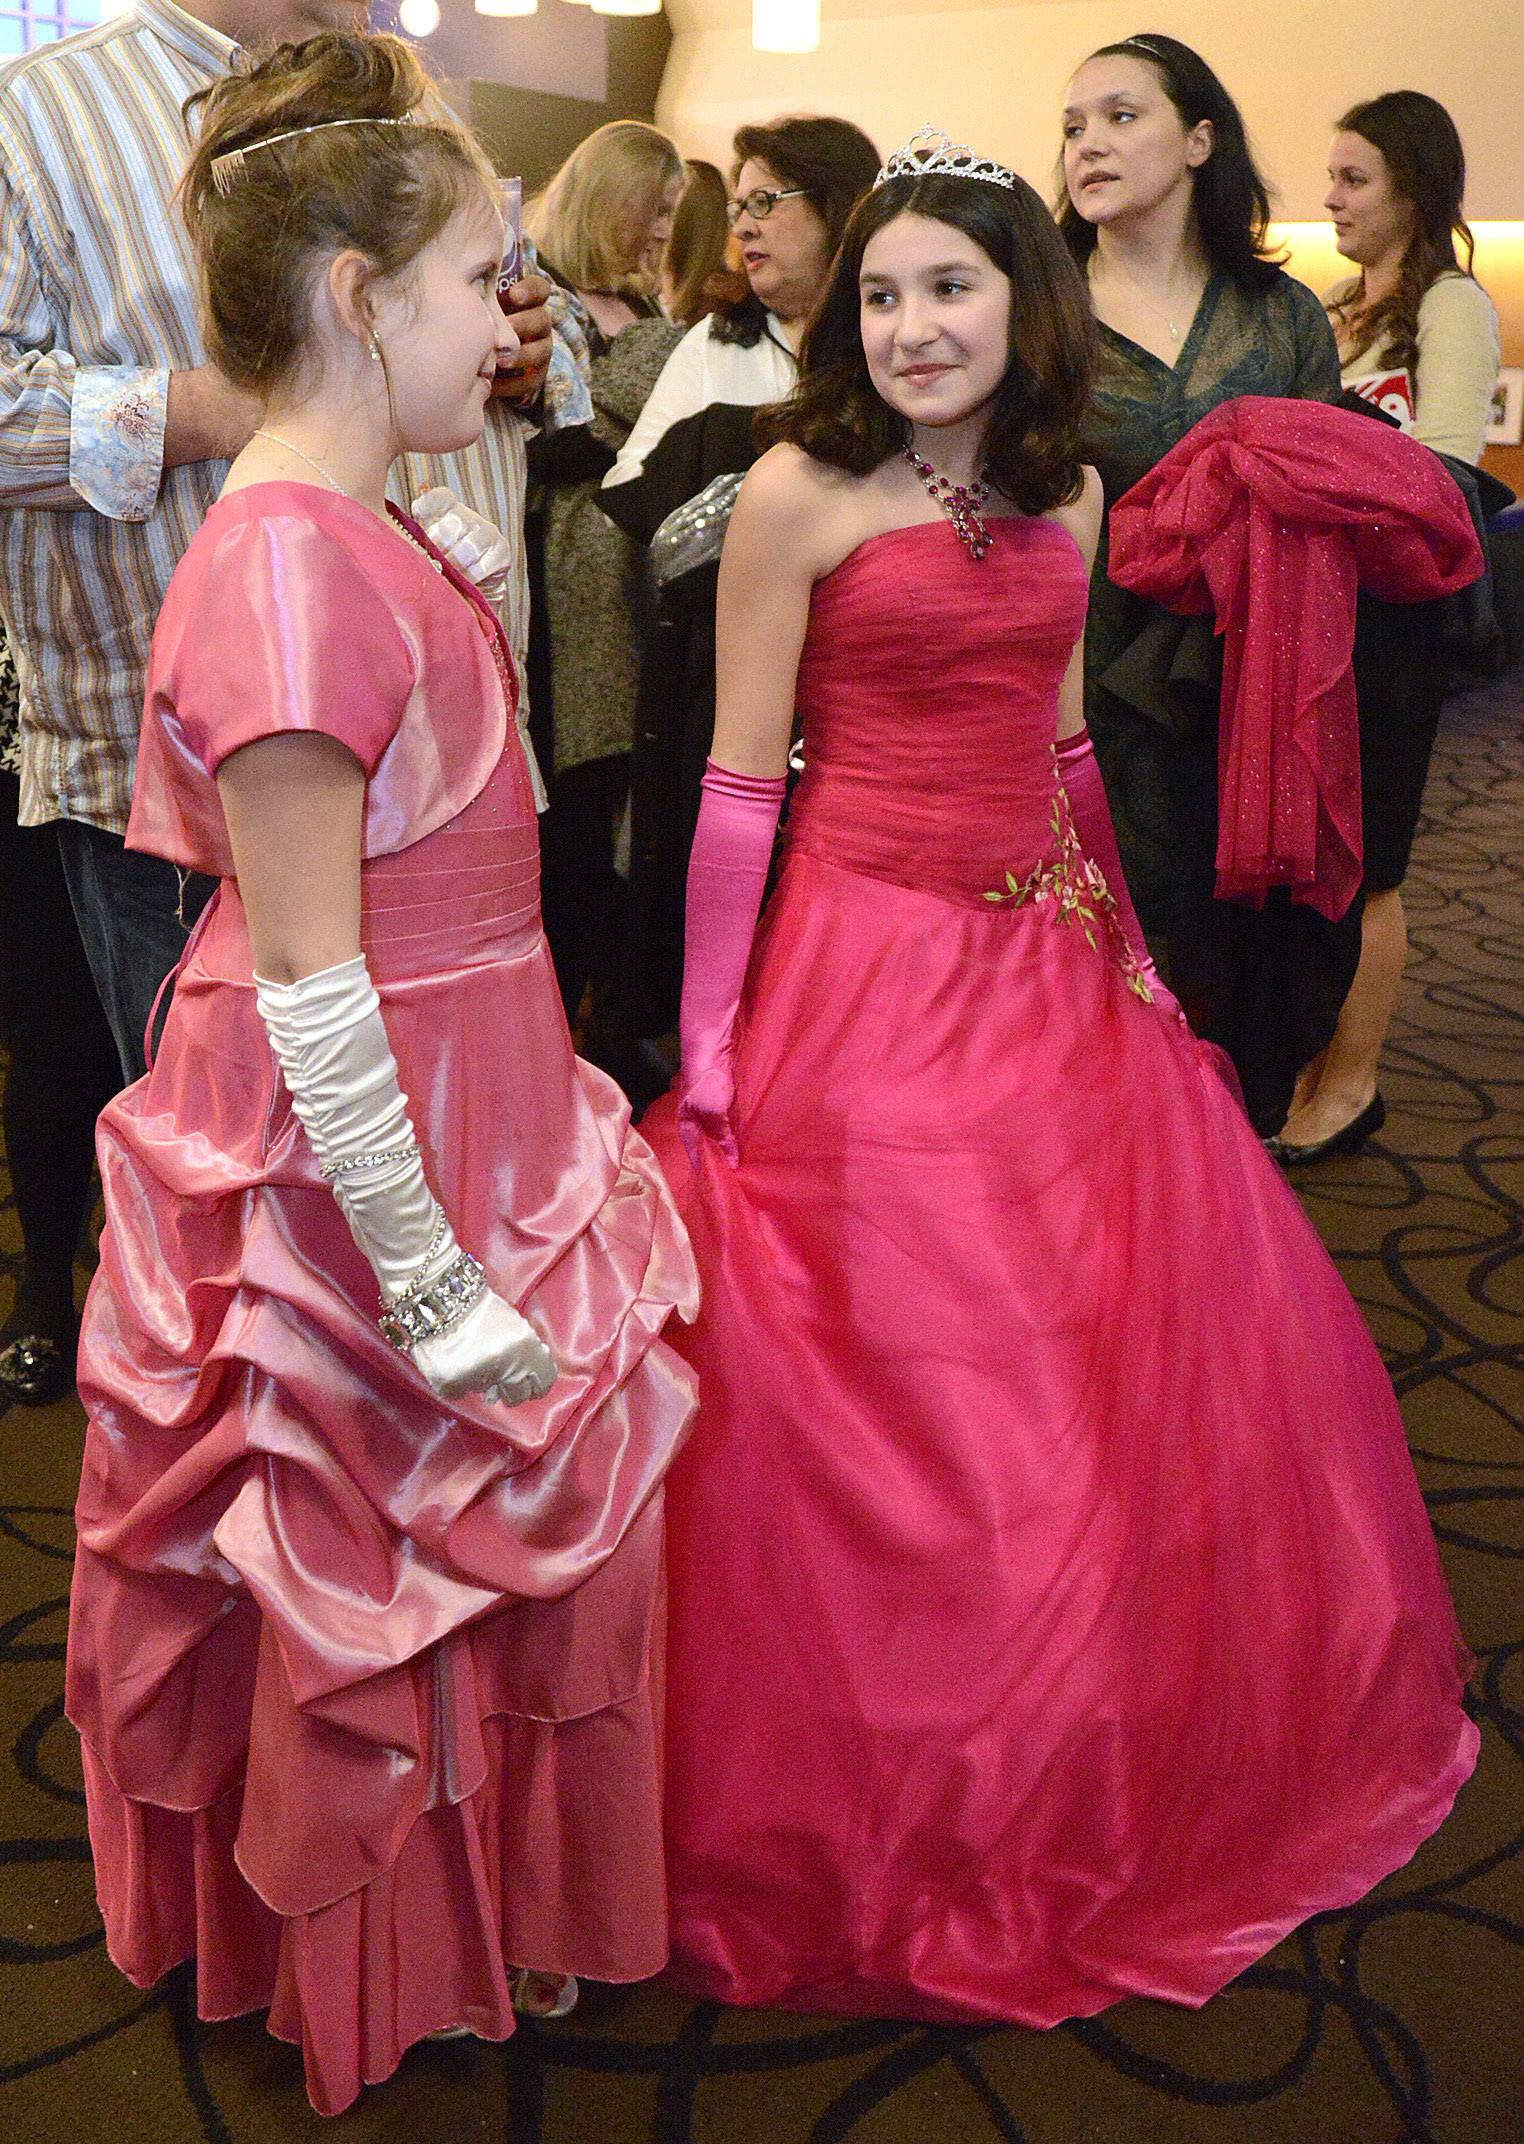 Best friends Sydney Cox and Gianna Danno, both 11 and from Channahon, dressed up special to watch the 86th Academy Awards at Studio Movie Grill in Wheaton on Sunday, March 2.